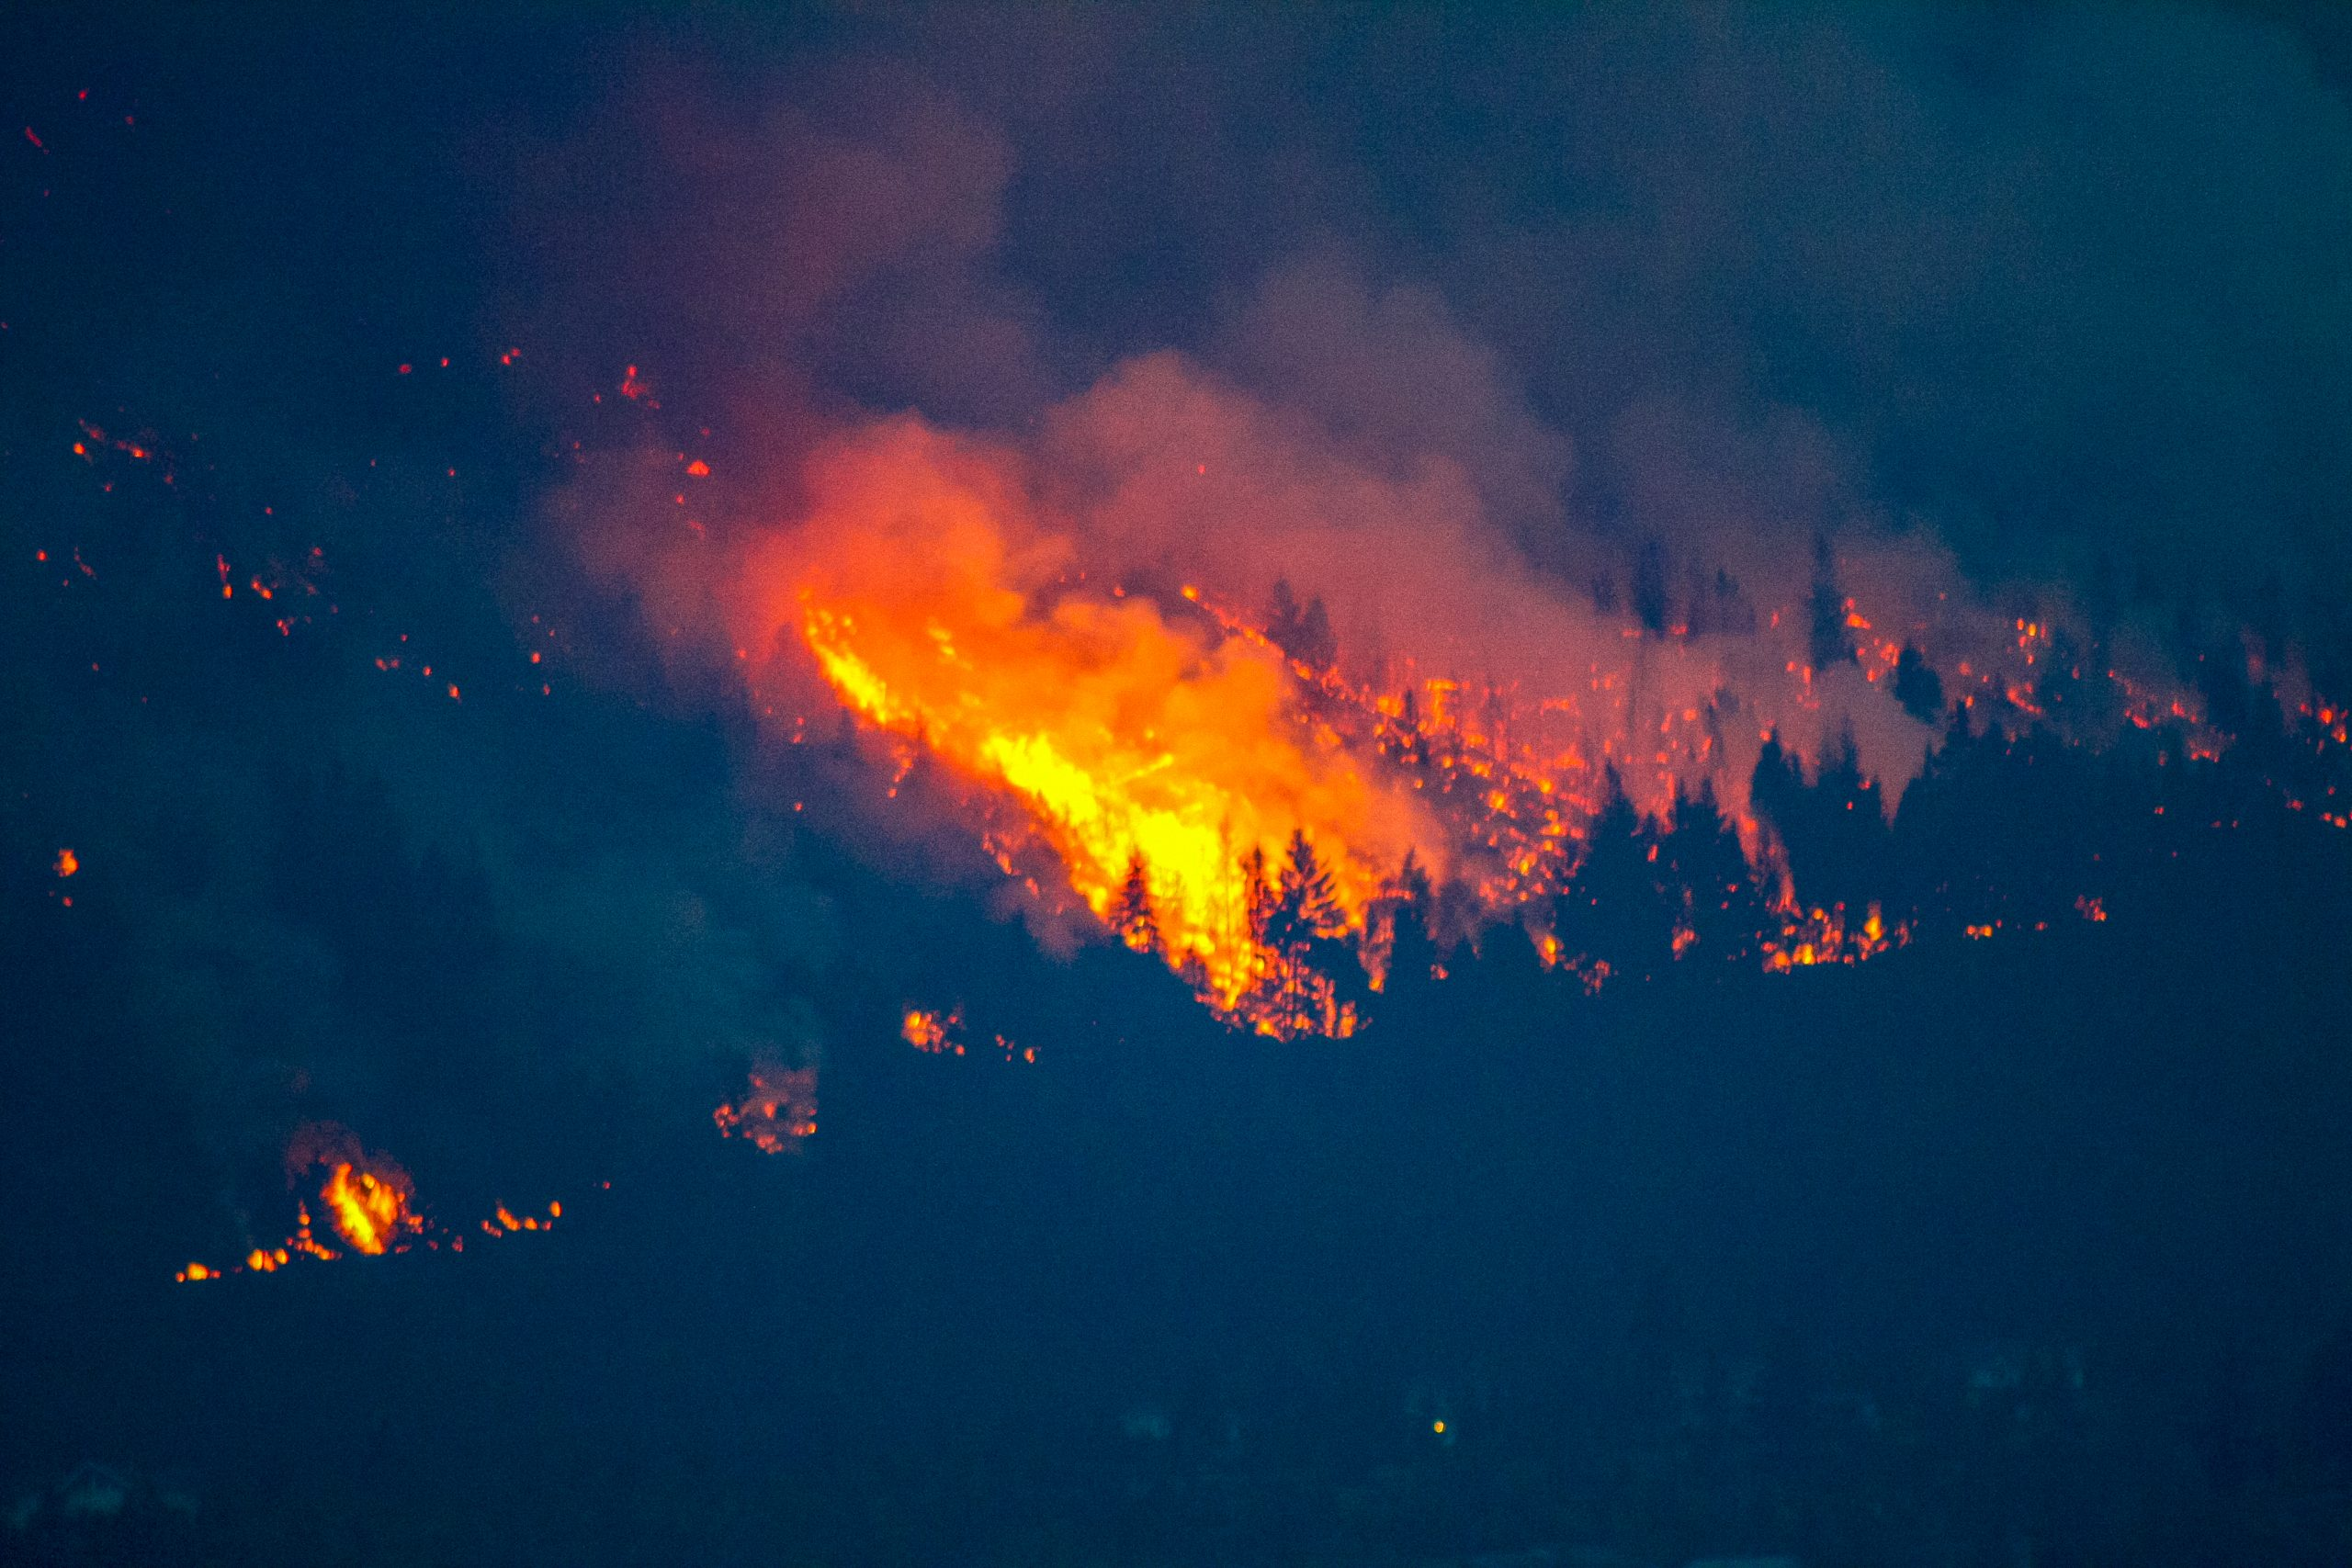 Images from the 2009 wildfire in Lillooet, BC, Ayden Harrison photo